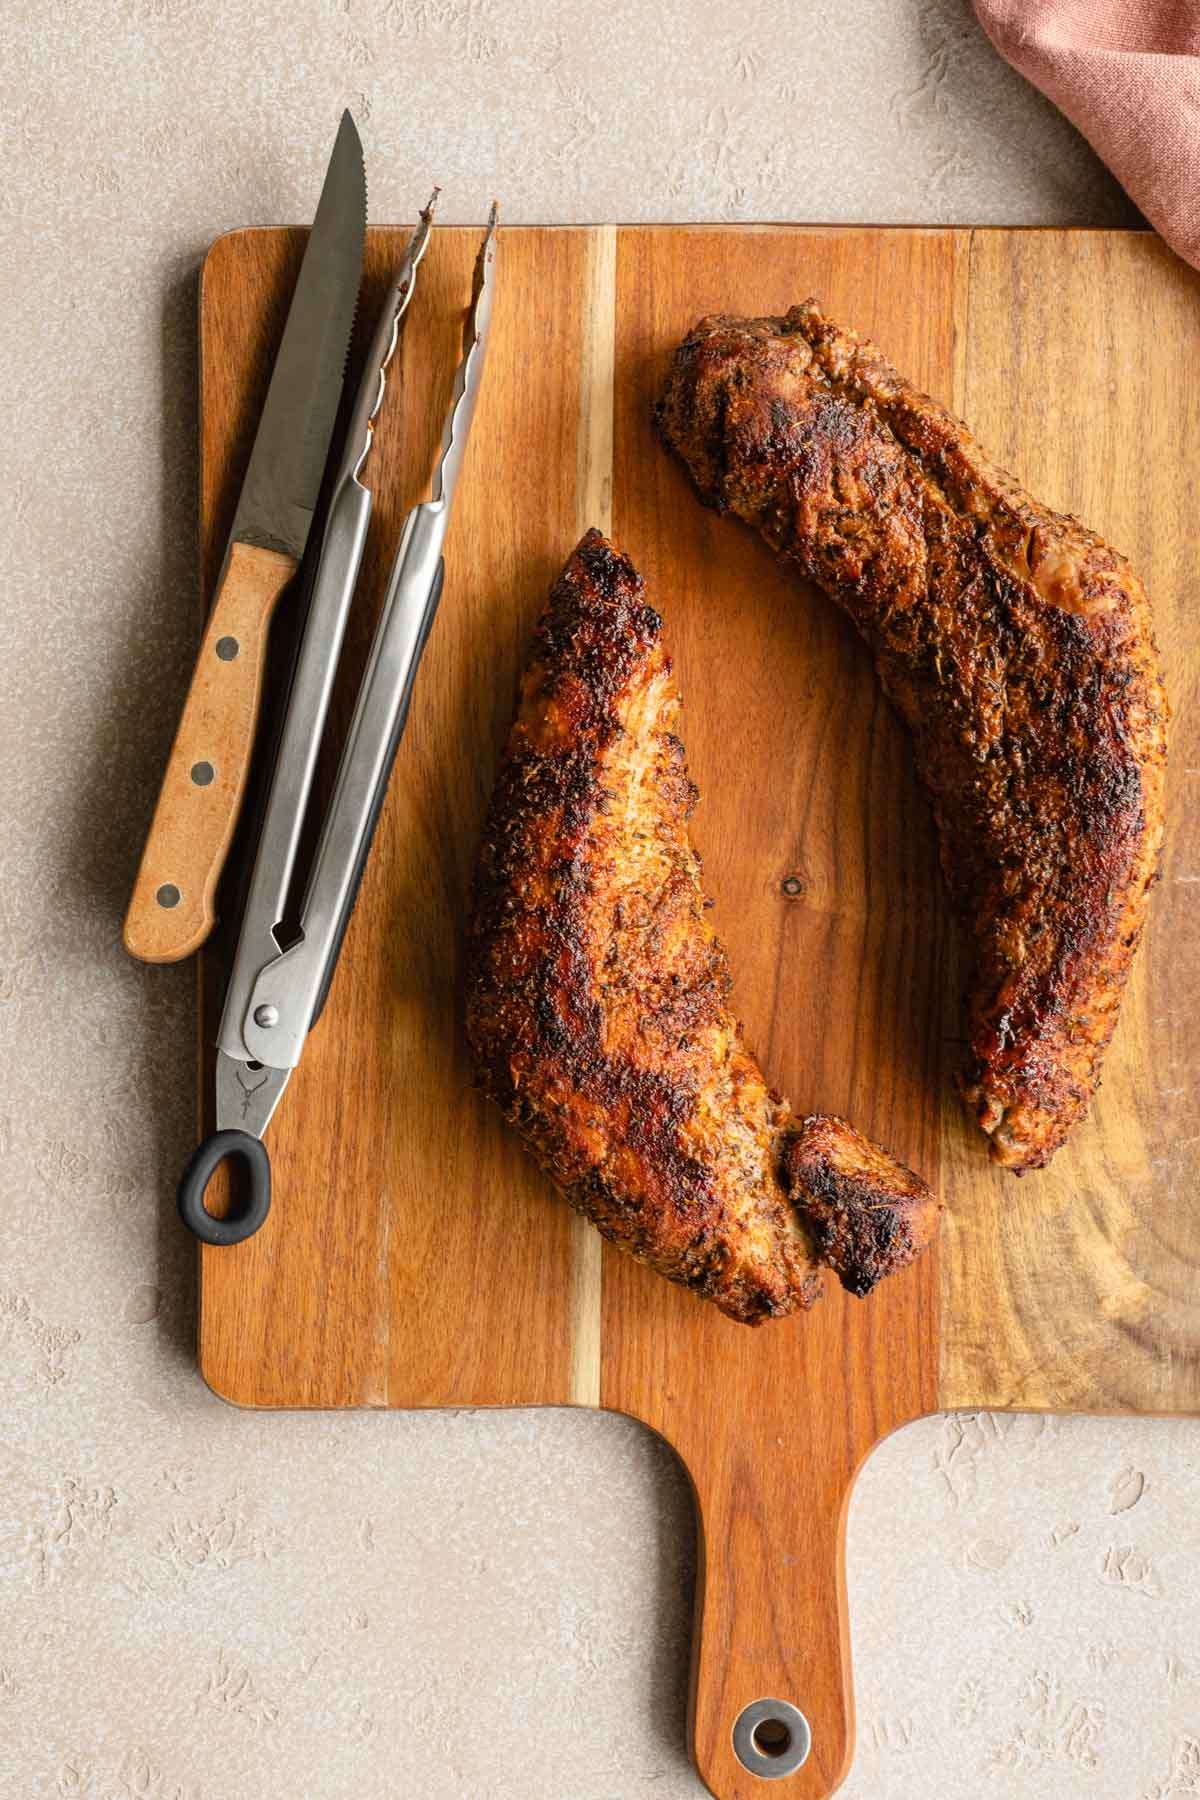 Two pork tenderloins on a wooden cutting board next to tongs and a knife.